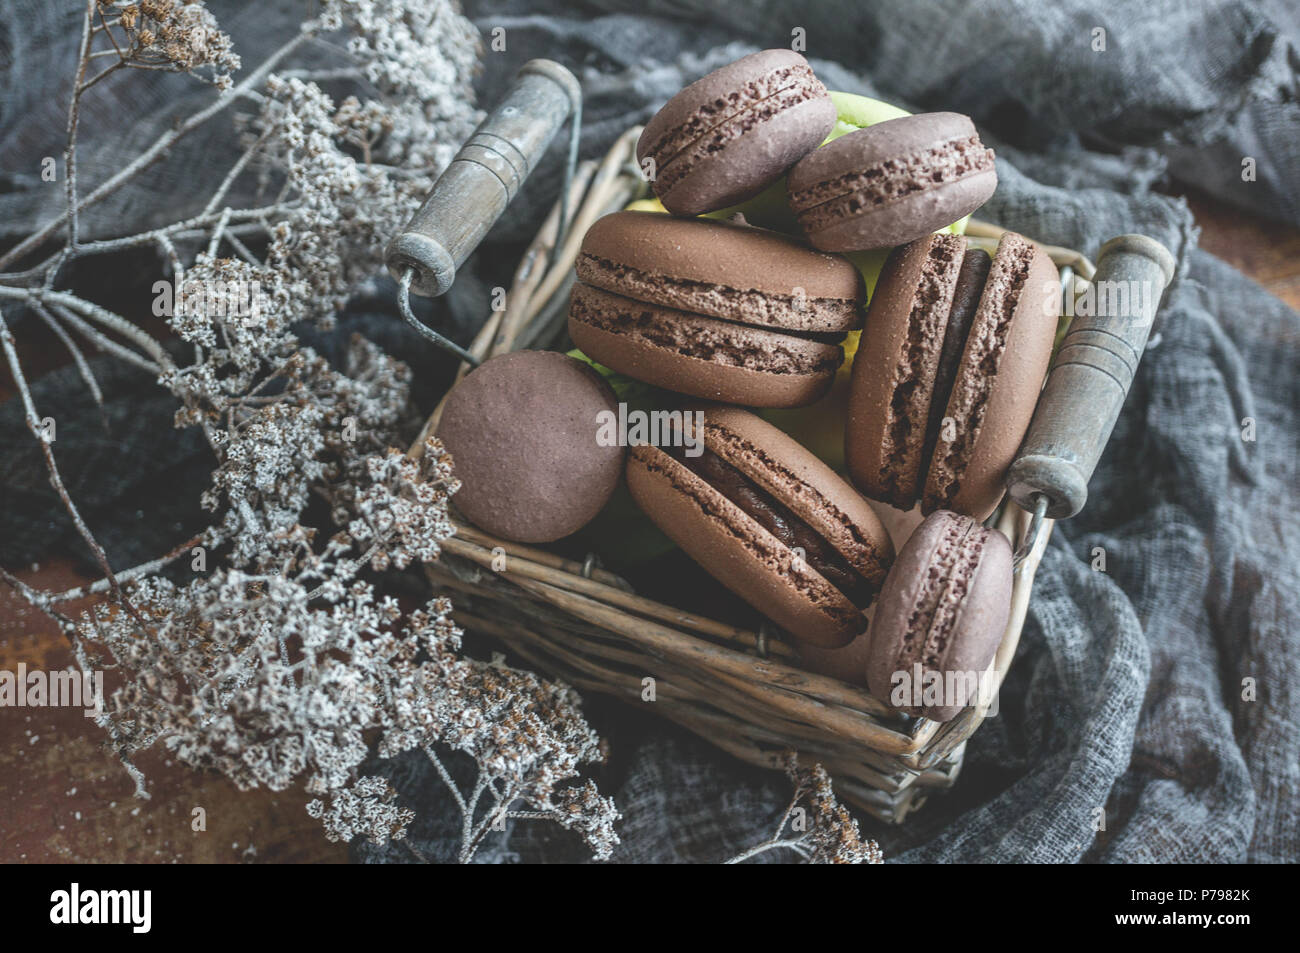 Freshly baked macaroons in wicker basket with handles with small white flowers on wooden background. Selective focus. - Stock Image